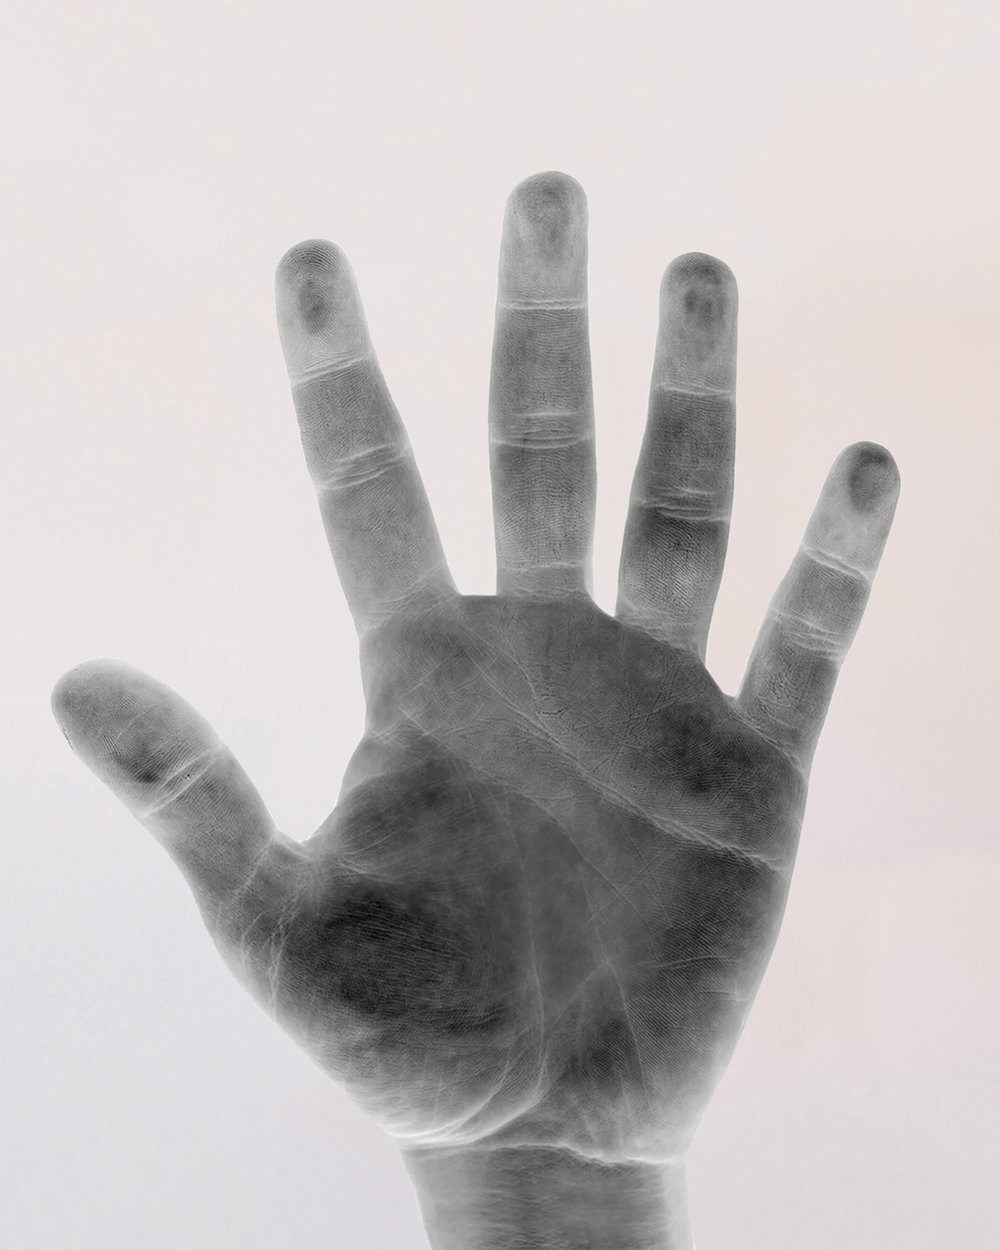 Palmistry is the claim of characterization and foretelling the future through the study of the palm.